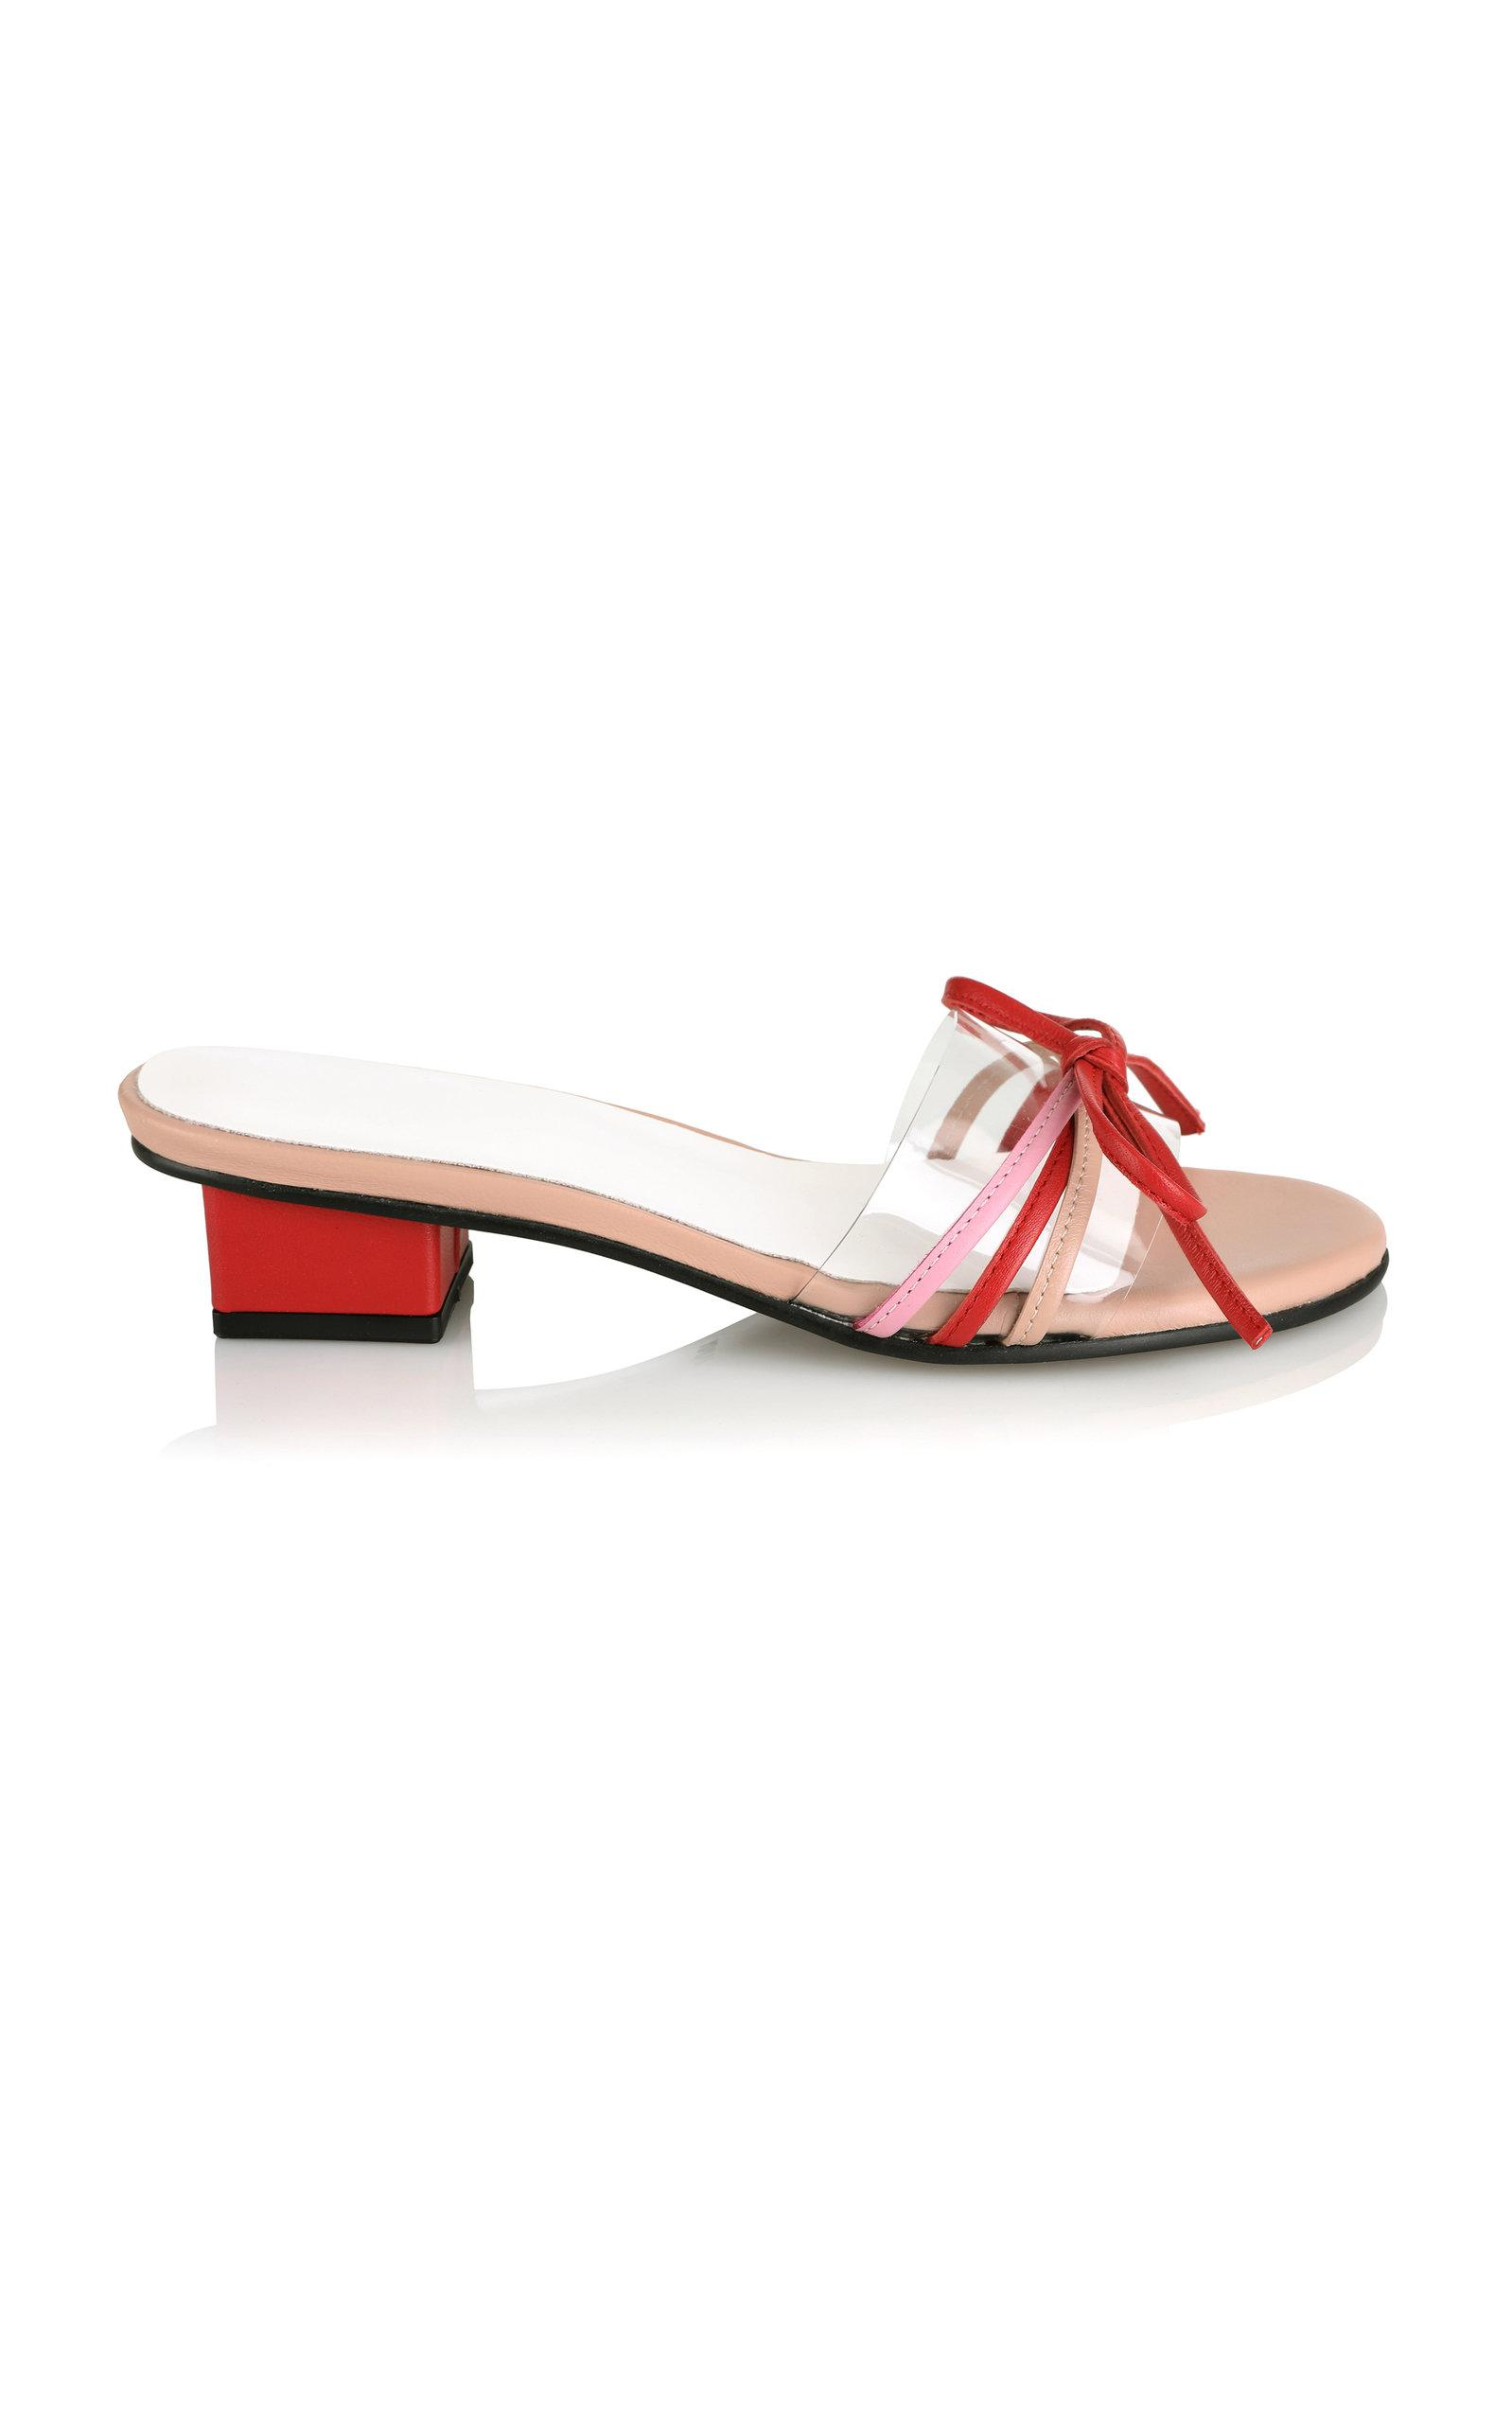 cb61f3759 Lyst - Yuul Yie Bow-embellished Pvc-trimmed Leather Sandals in Red